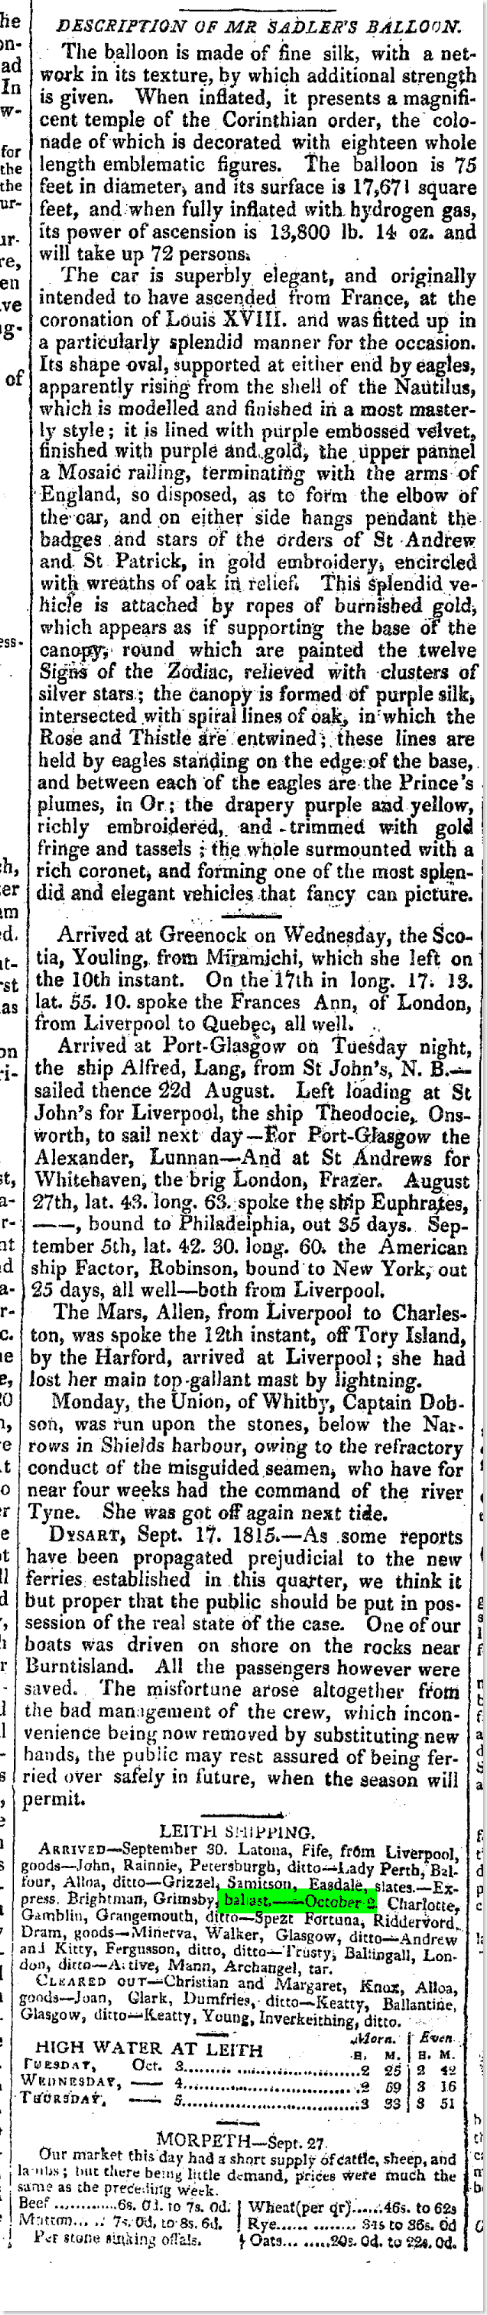 Caledonian Mercury (Edinburgh, Scotland), Monday, October 2, 1815; Issue 14640 2